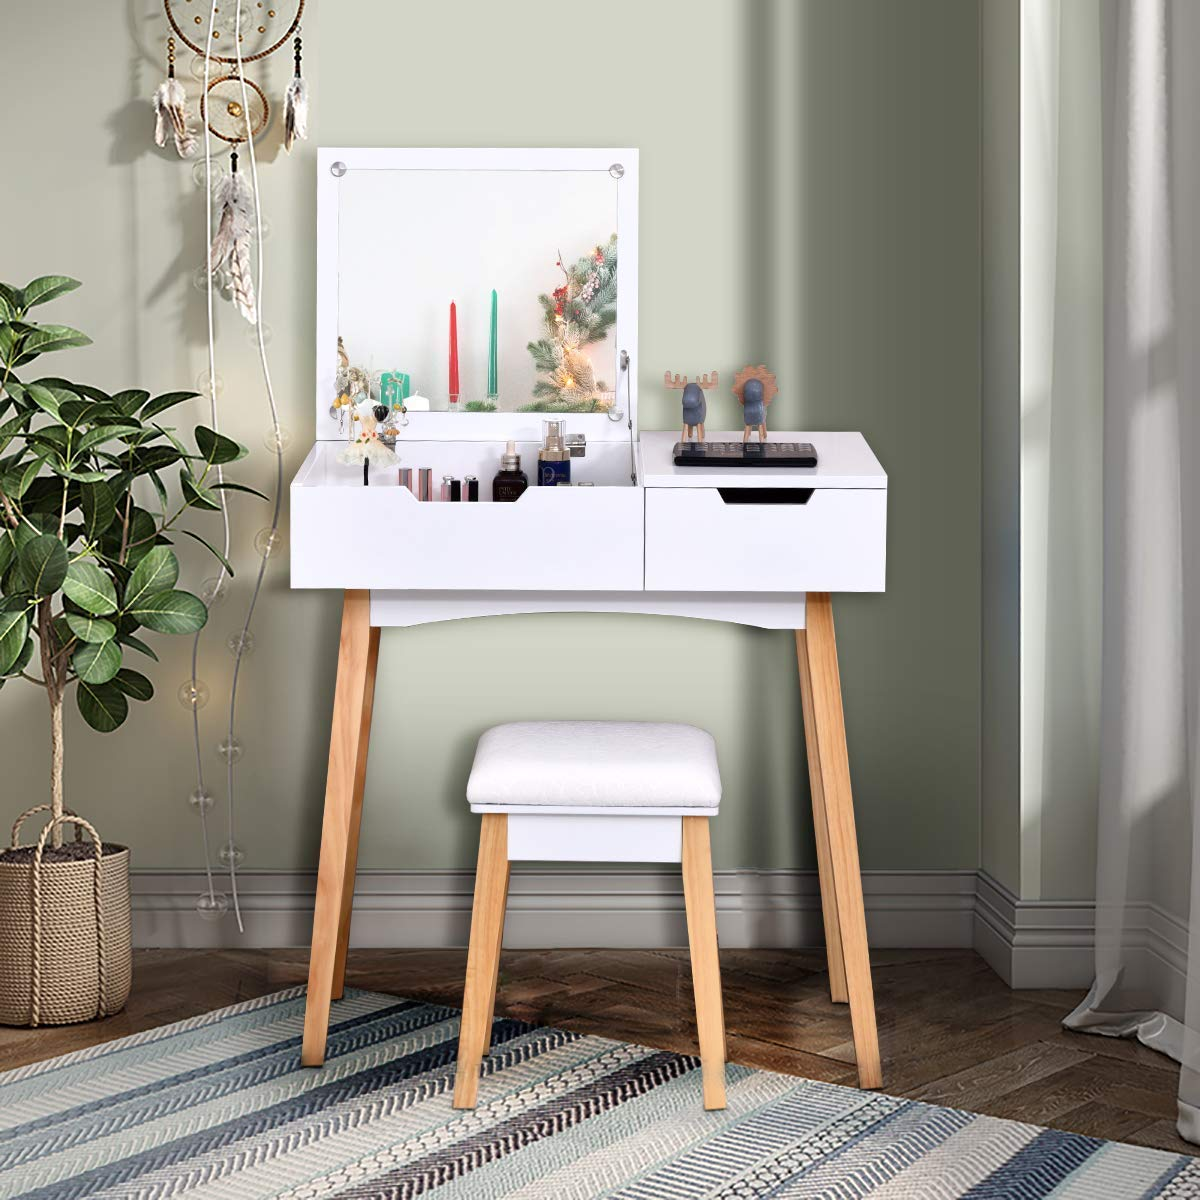 CHARMAID Vanity Table with Flip Top Mirror and Cushioned Stool, Wooden Makeup Dressing Table Writing Desk with Drawer, Bedroom Bathroom Dressing Set for Kids Girls Women, Easy Assembly, White